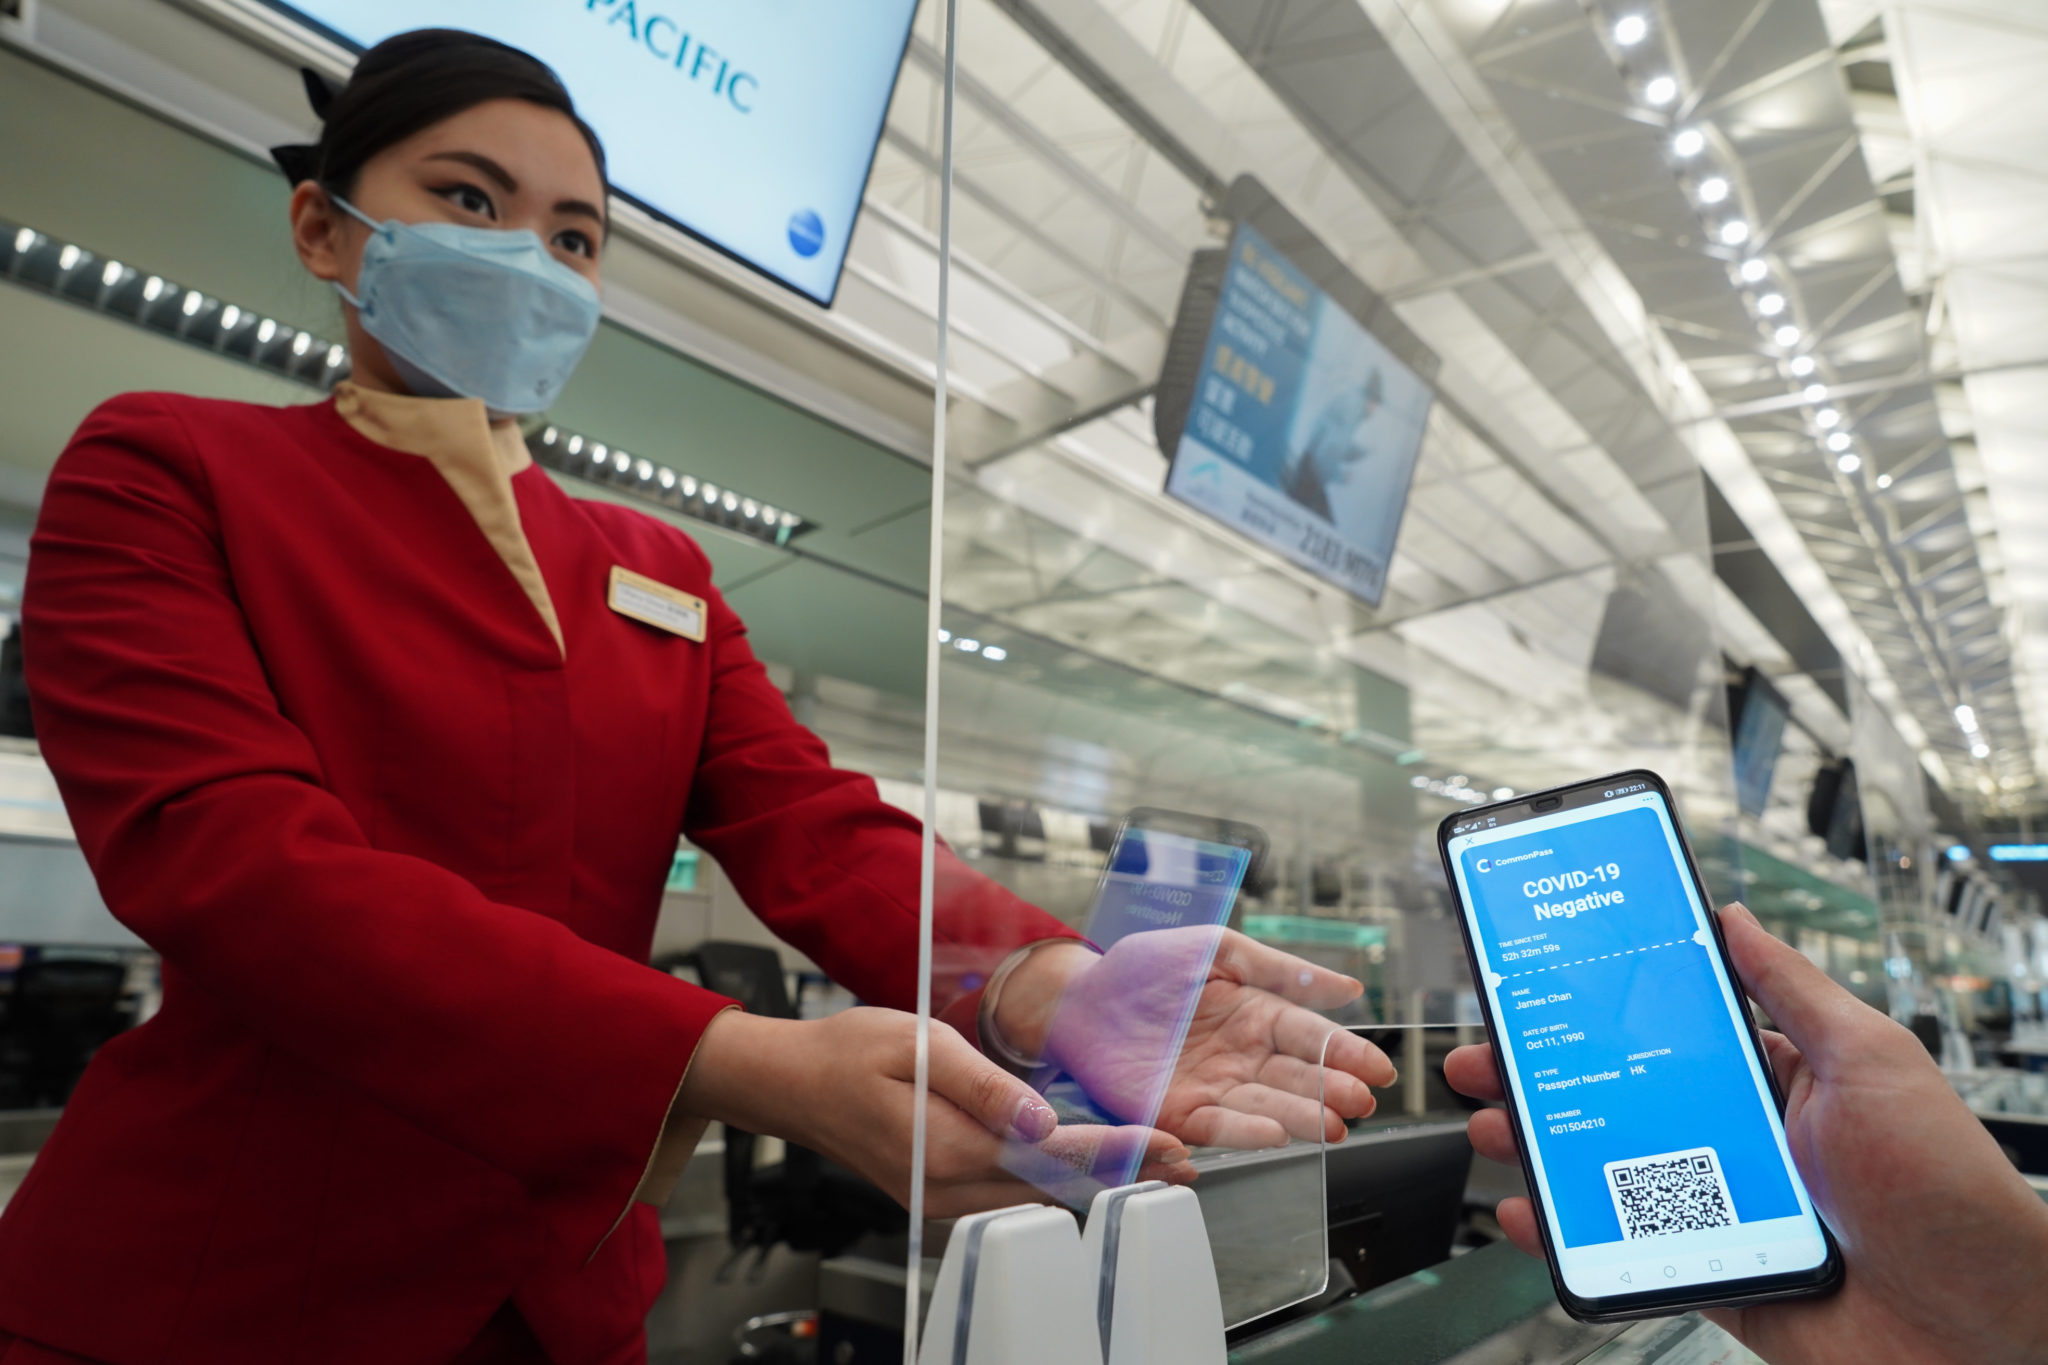 Digital health pass trial successfully completed at HKIA | AIR CARGO WEEK